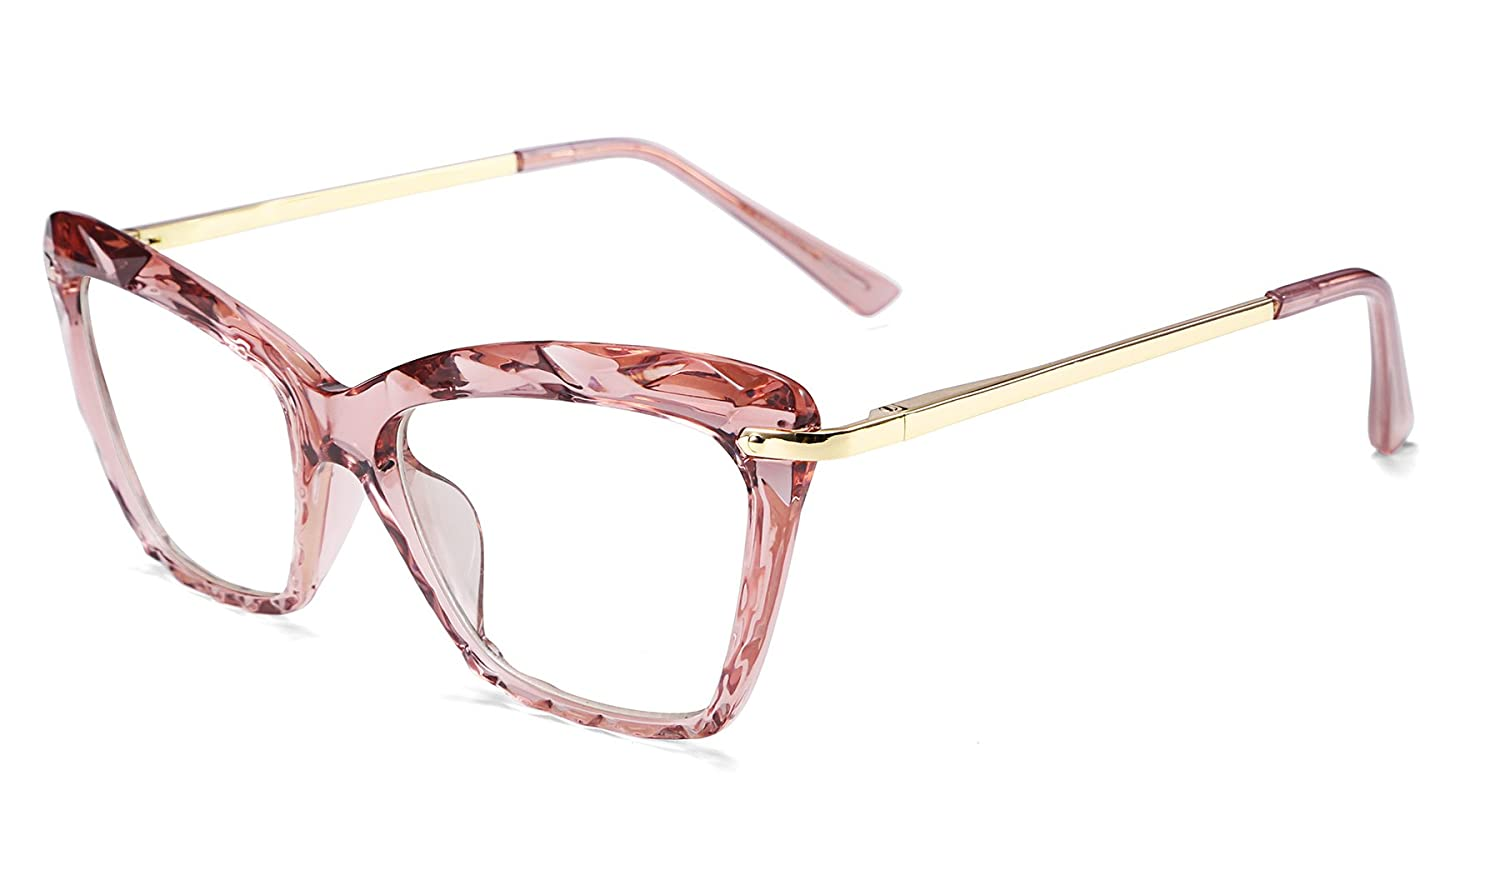 FEISEDY Cat Eye Crystal Glasses Frame Women Non Prescription Optical Eyewear B2440 B2440-XBK-D